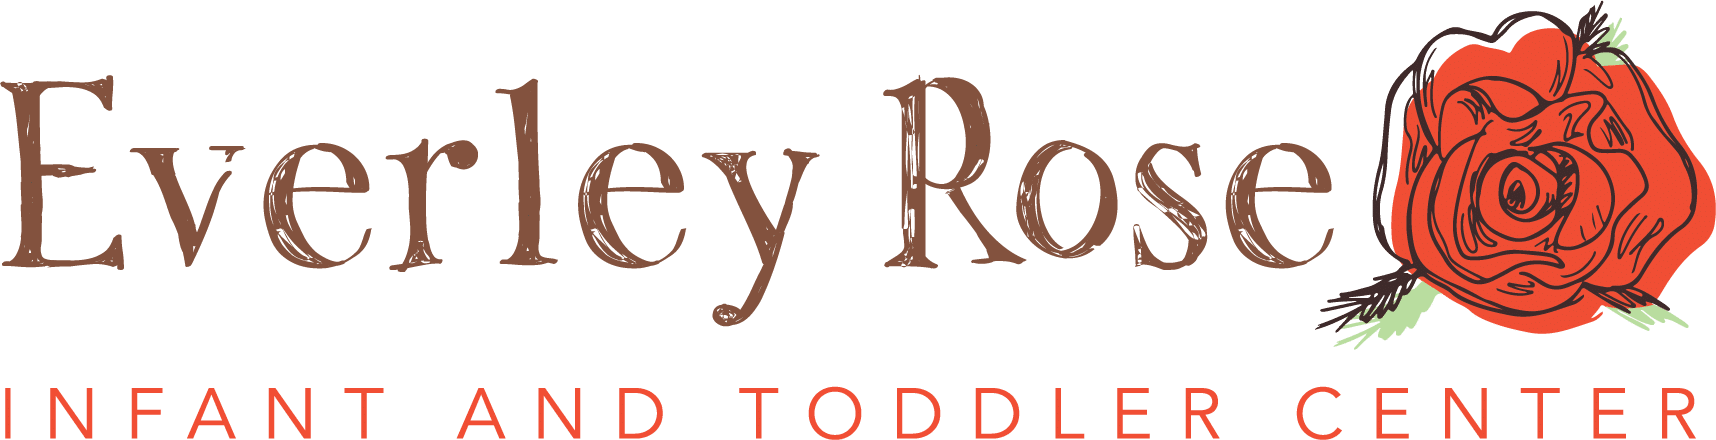 Everley Rose Center